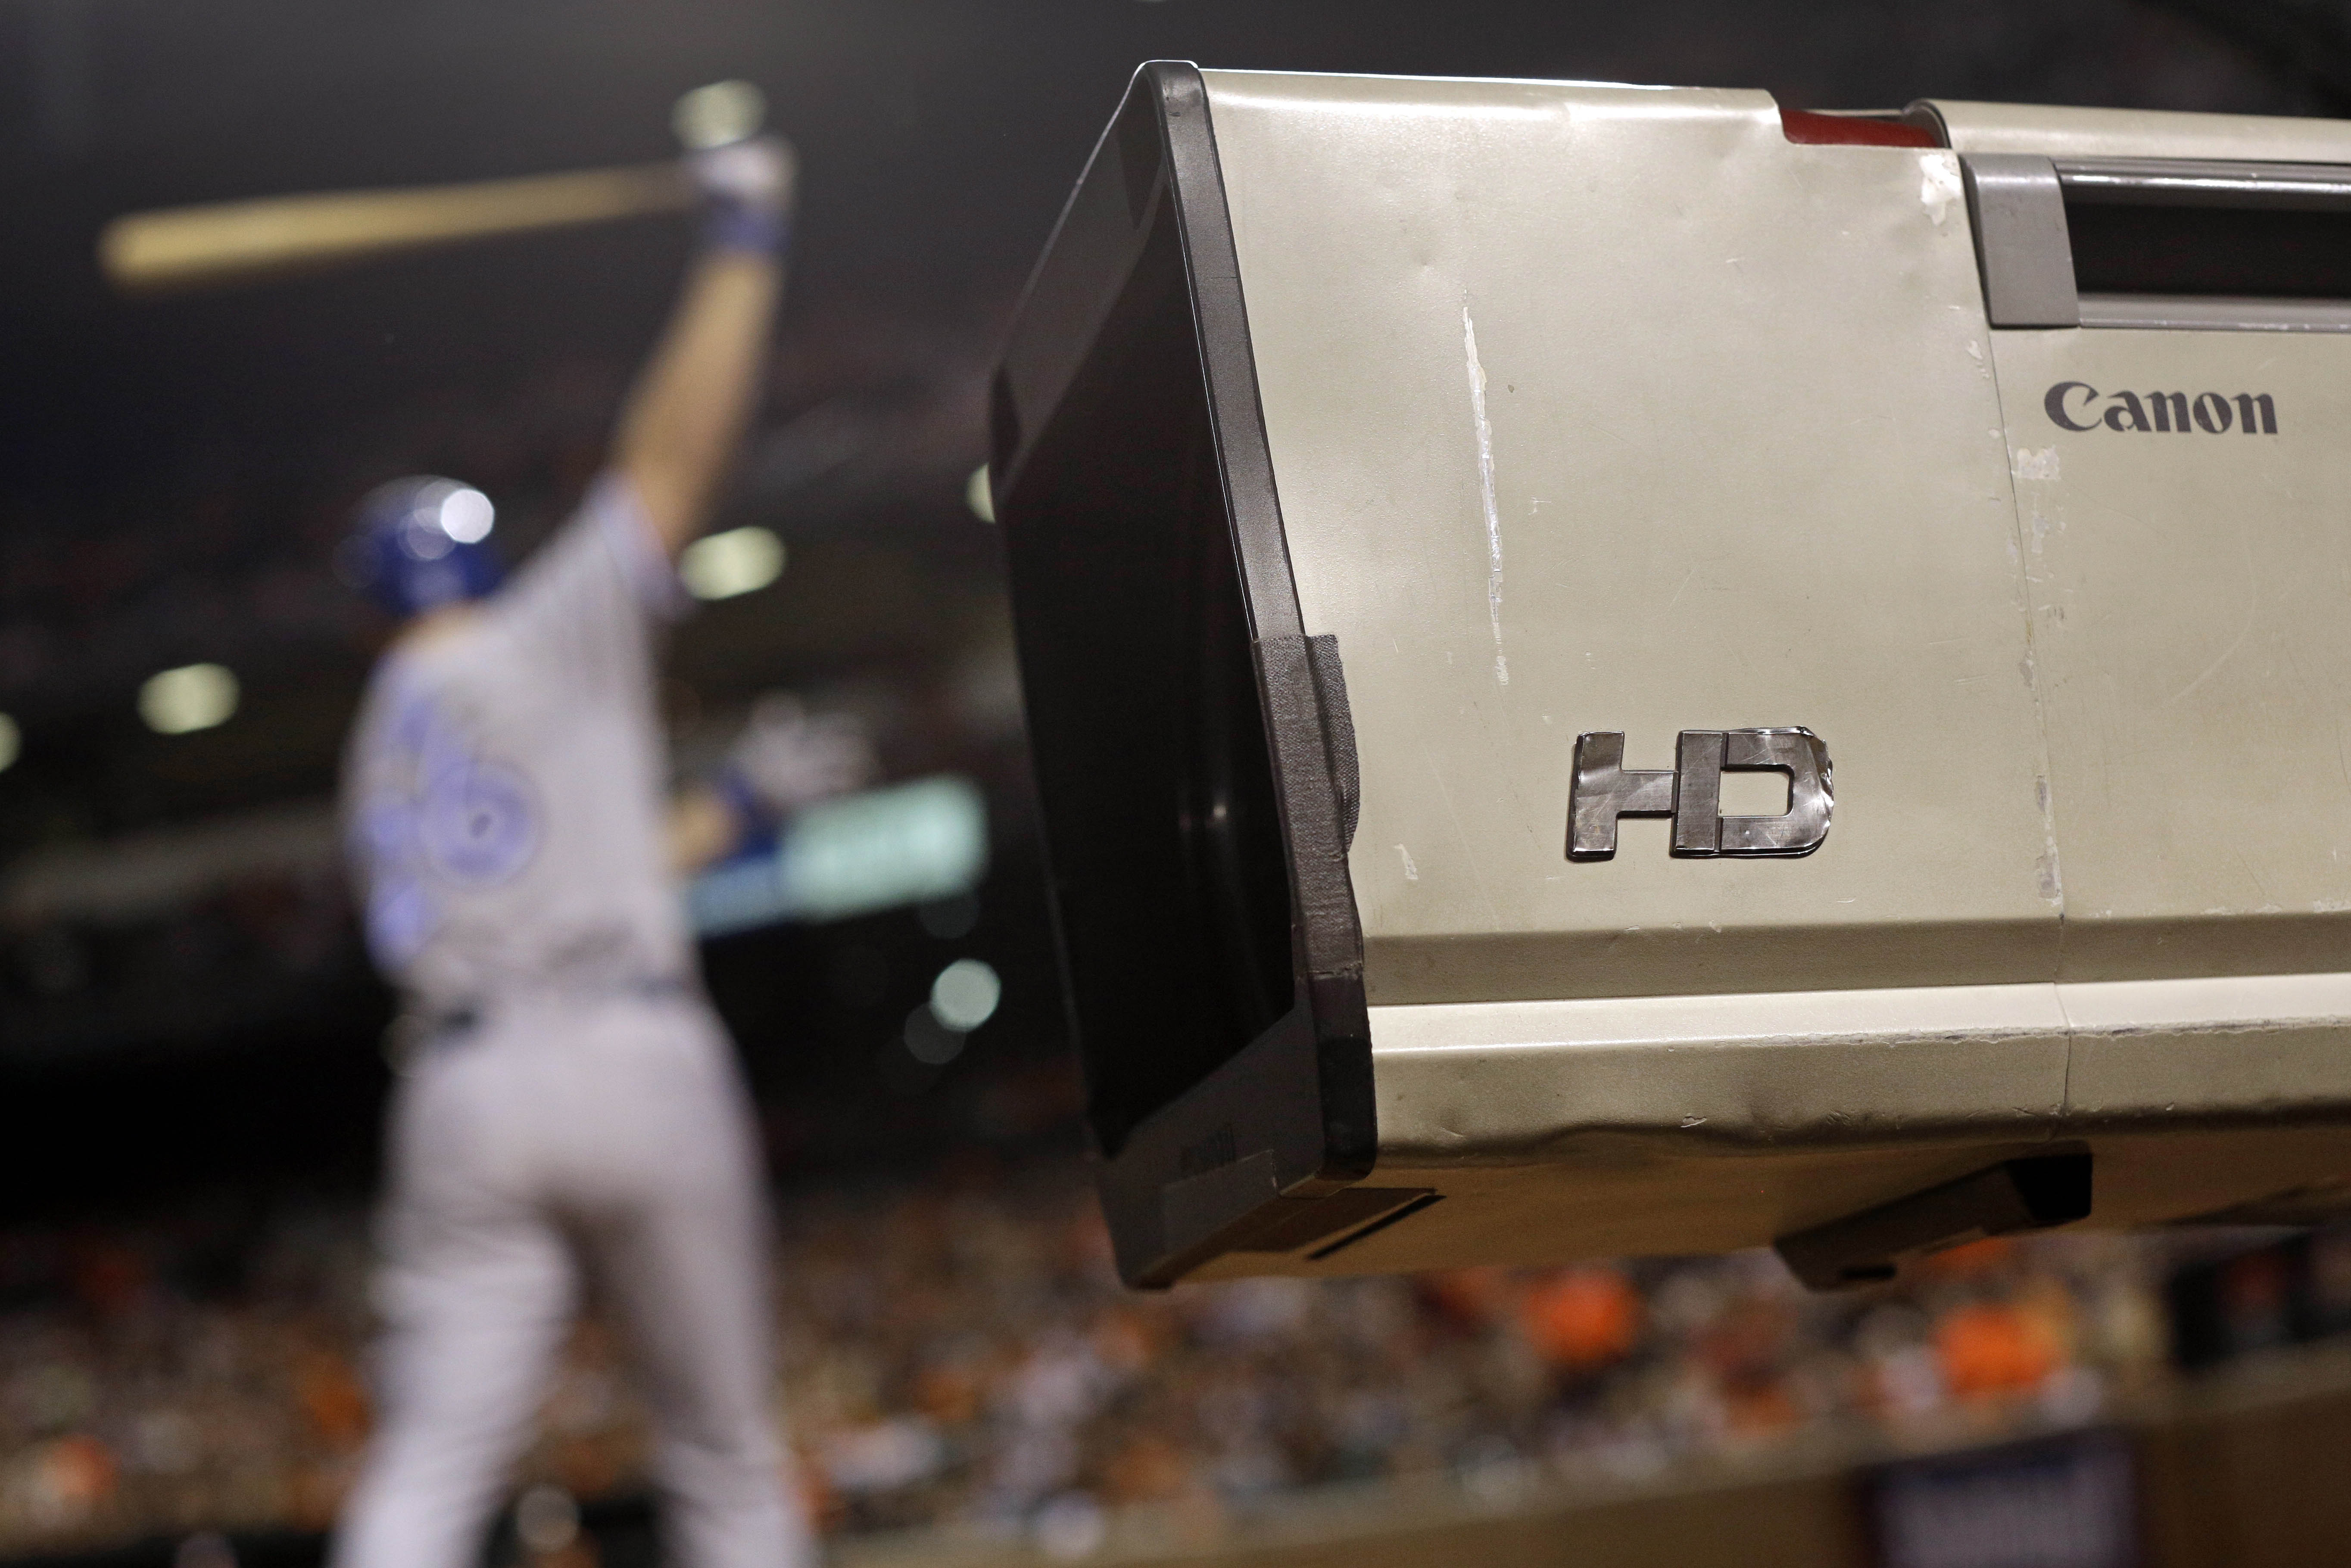 Live sports packages could see tweaks pretty soon